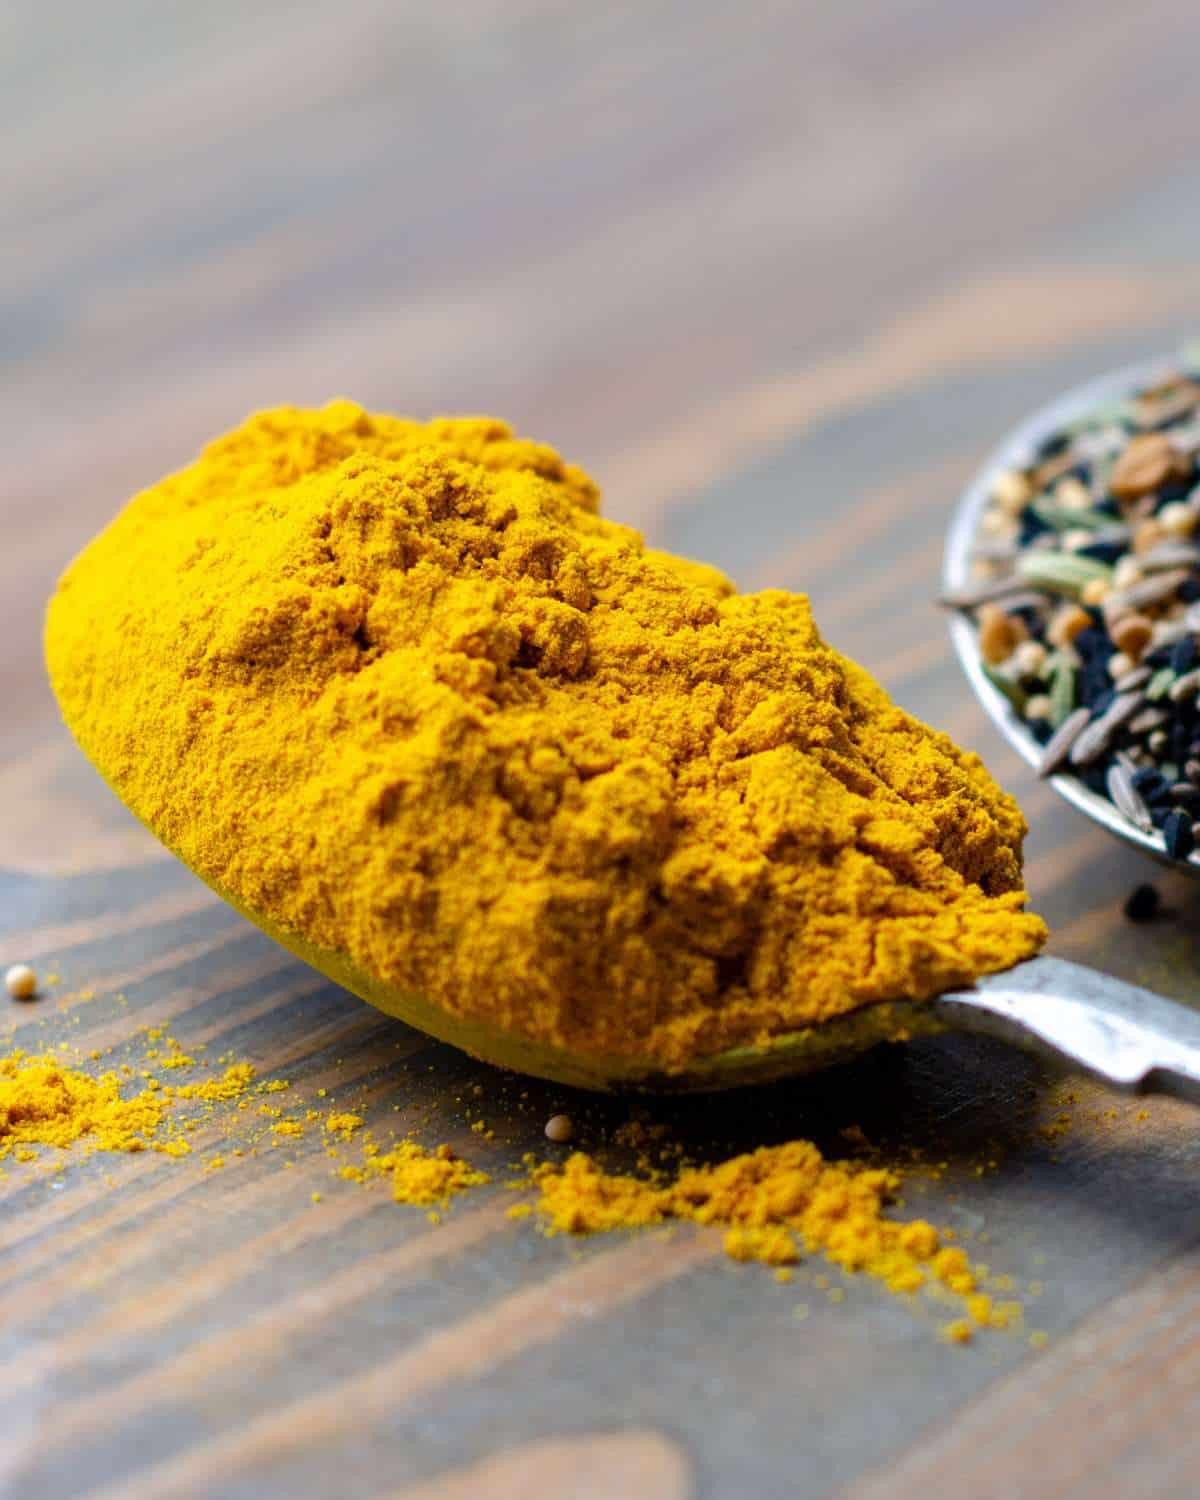 Food photography of ground Turmeric on a spoon with spices in the background